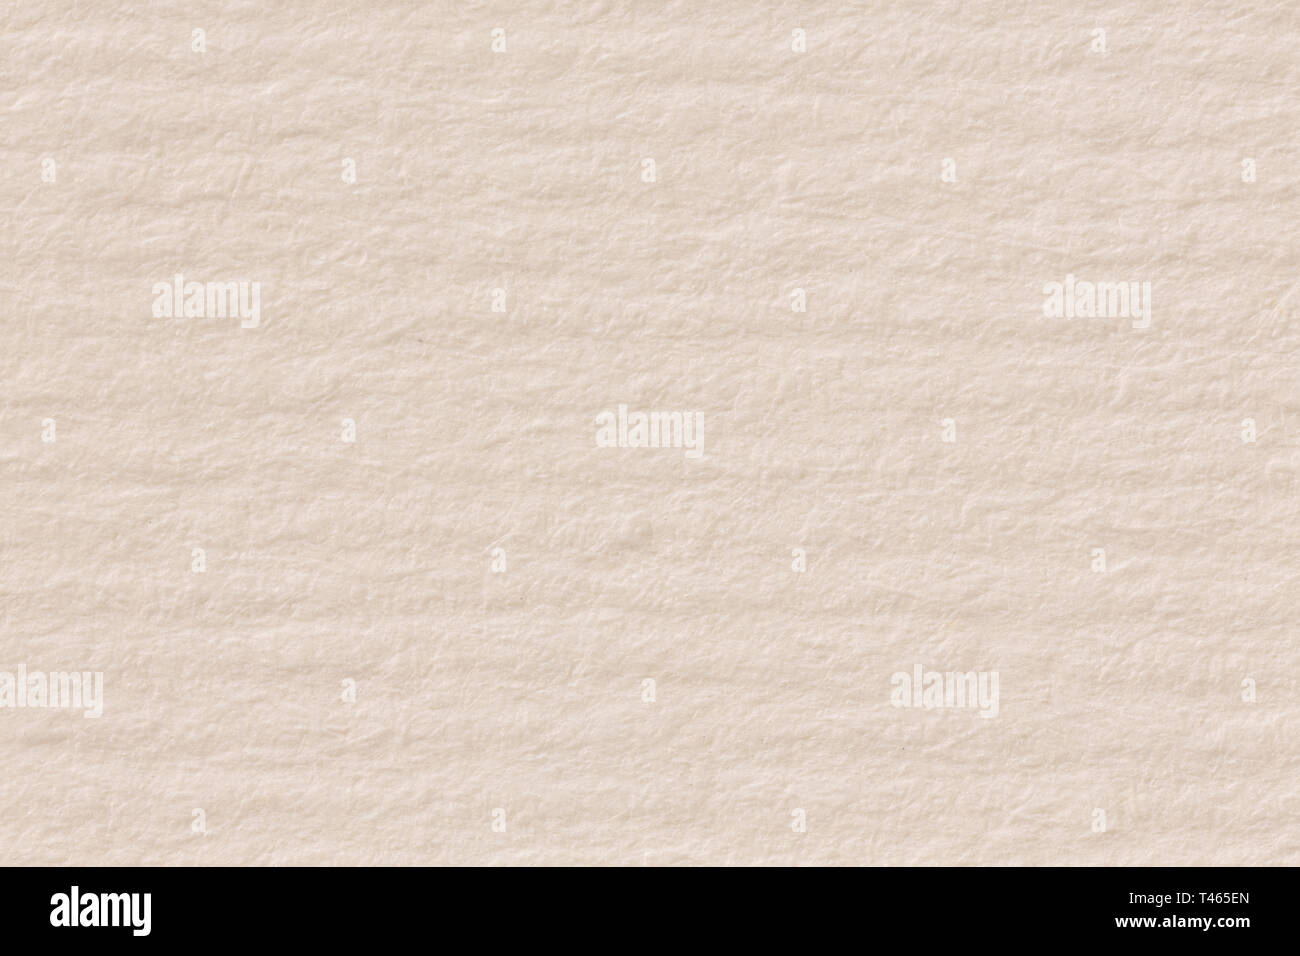 Beige paper texture with horizontal lines for background usage. - Stock Image